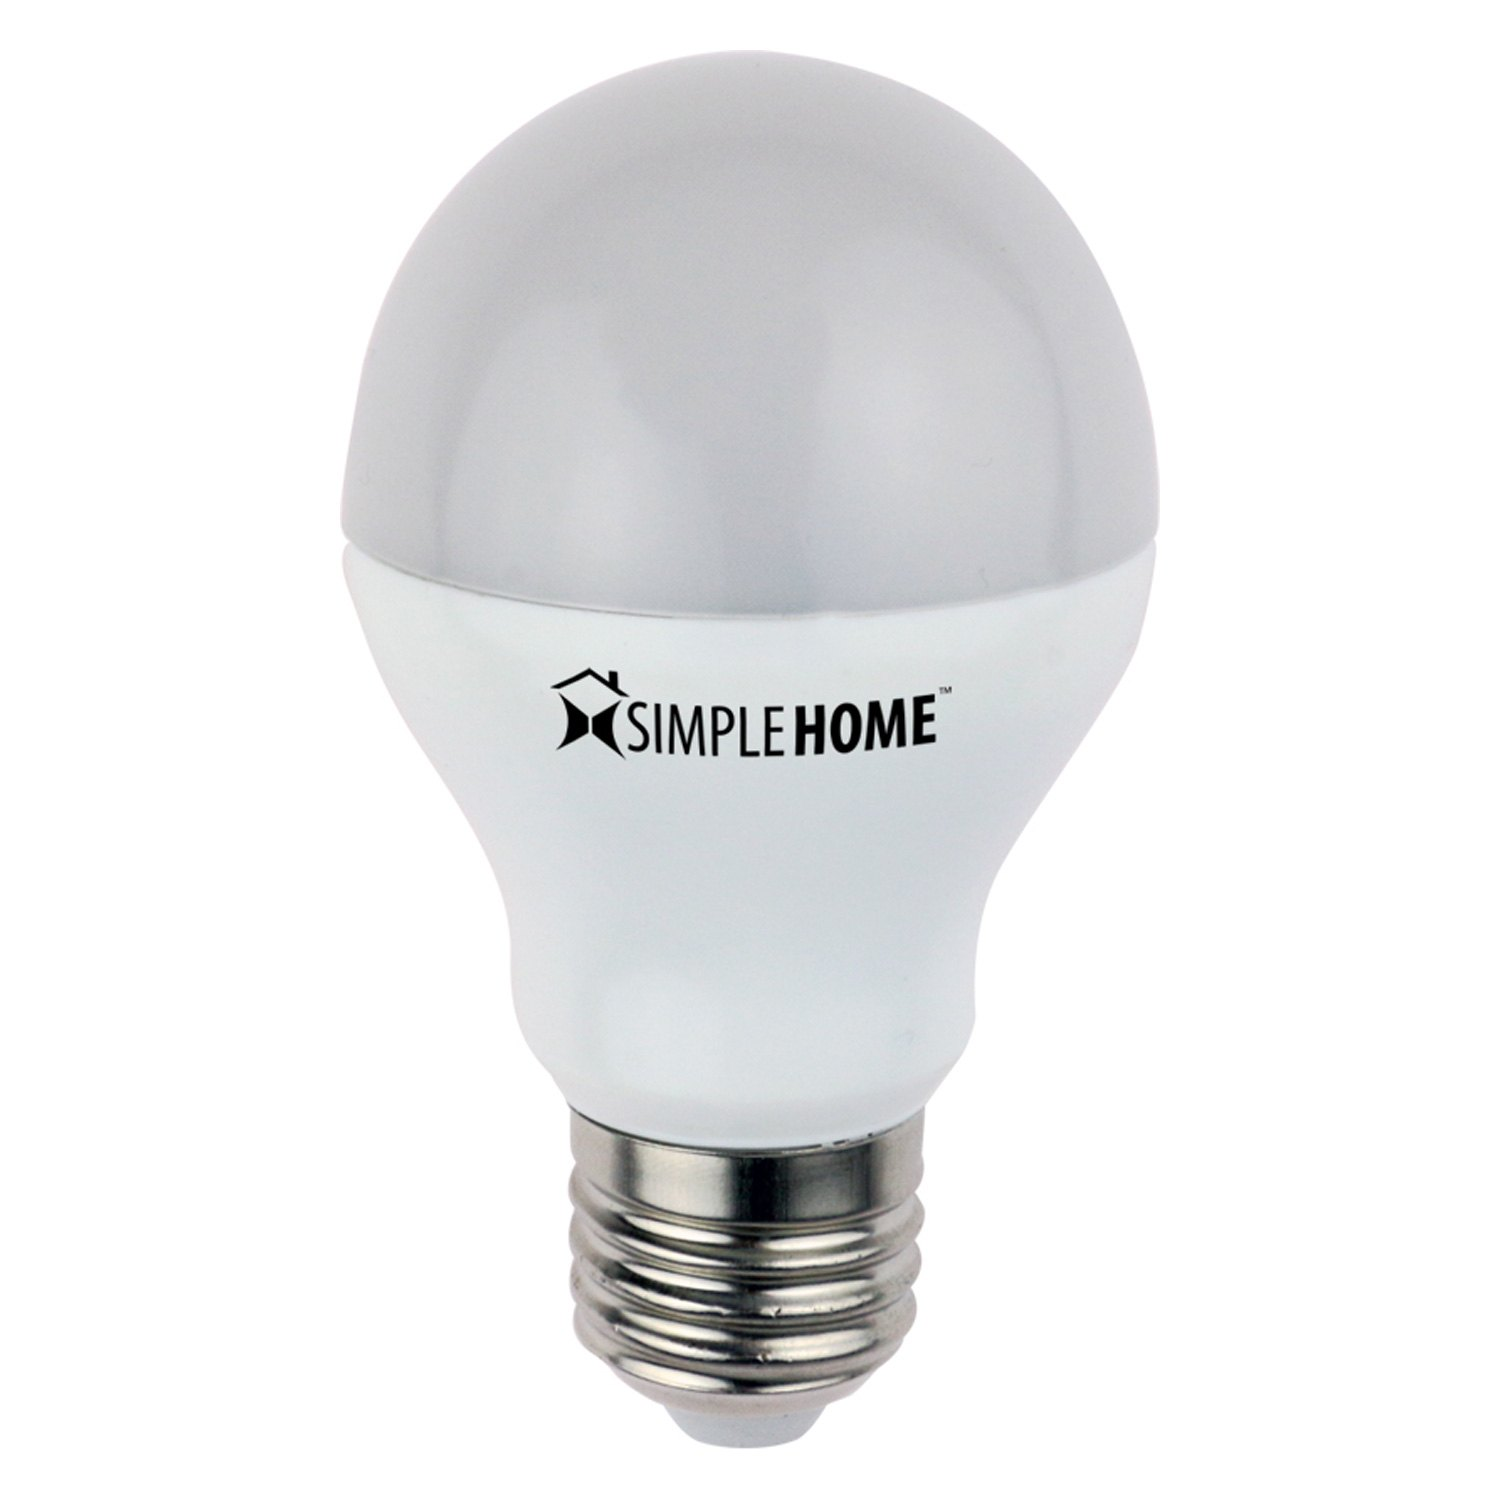 Simple Home® XLB7-1001-WHT - Dimmable Smart White Wi-Fi LED Bulb